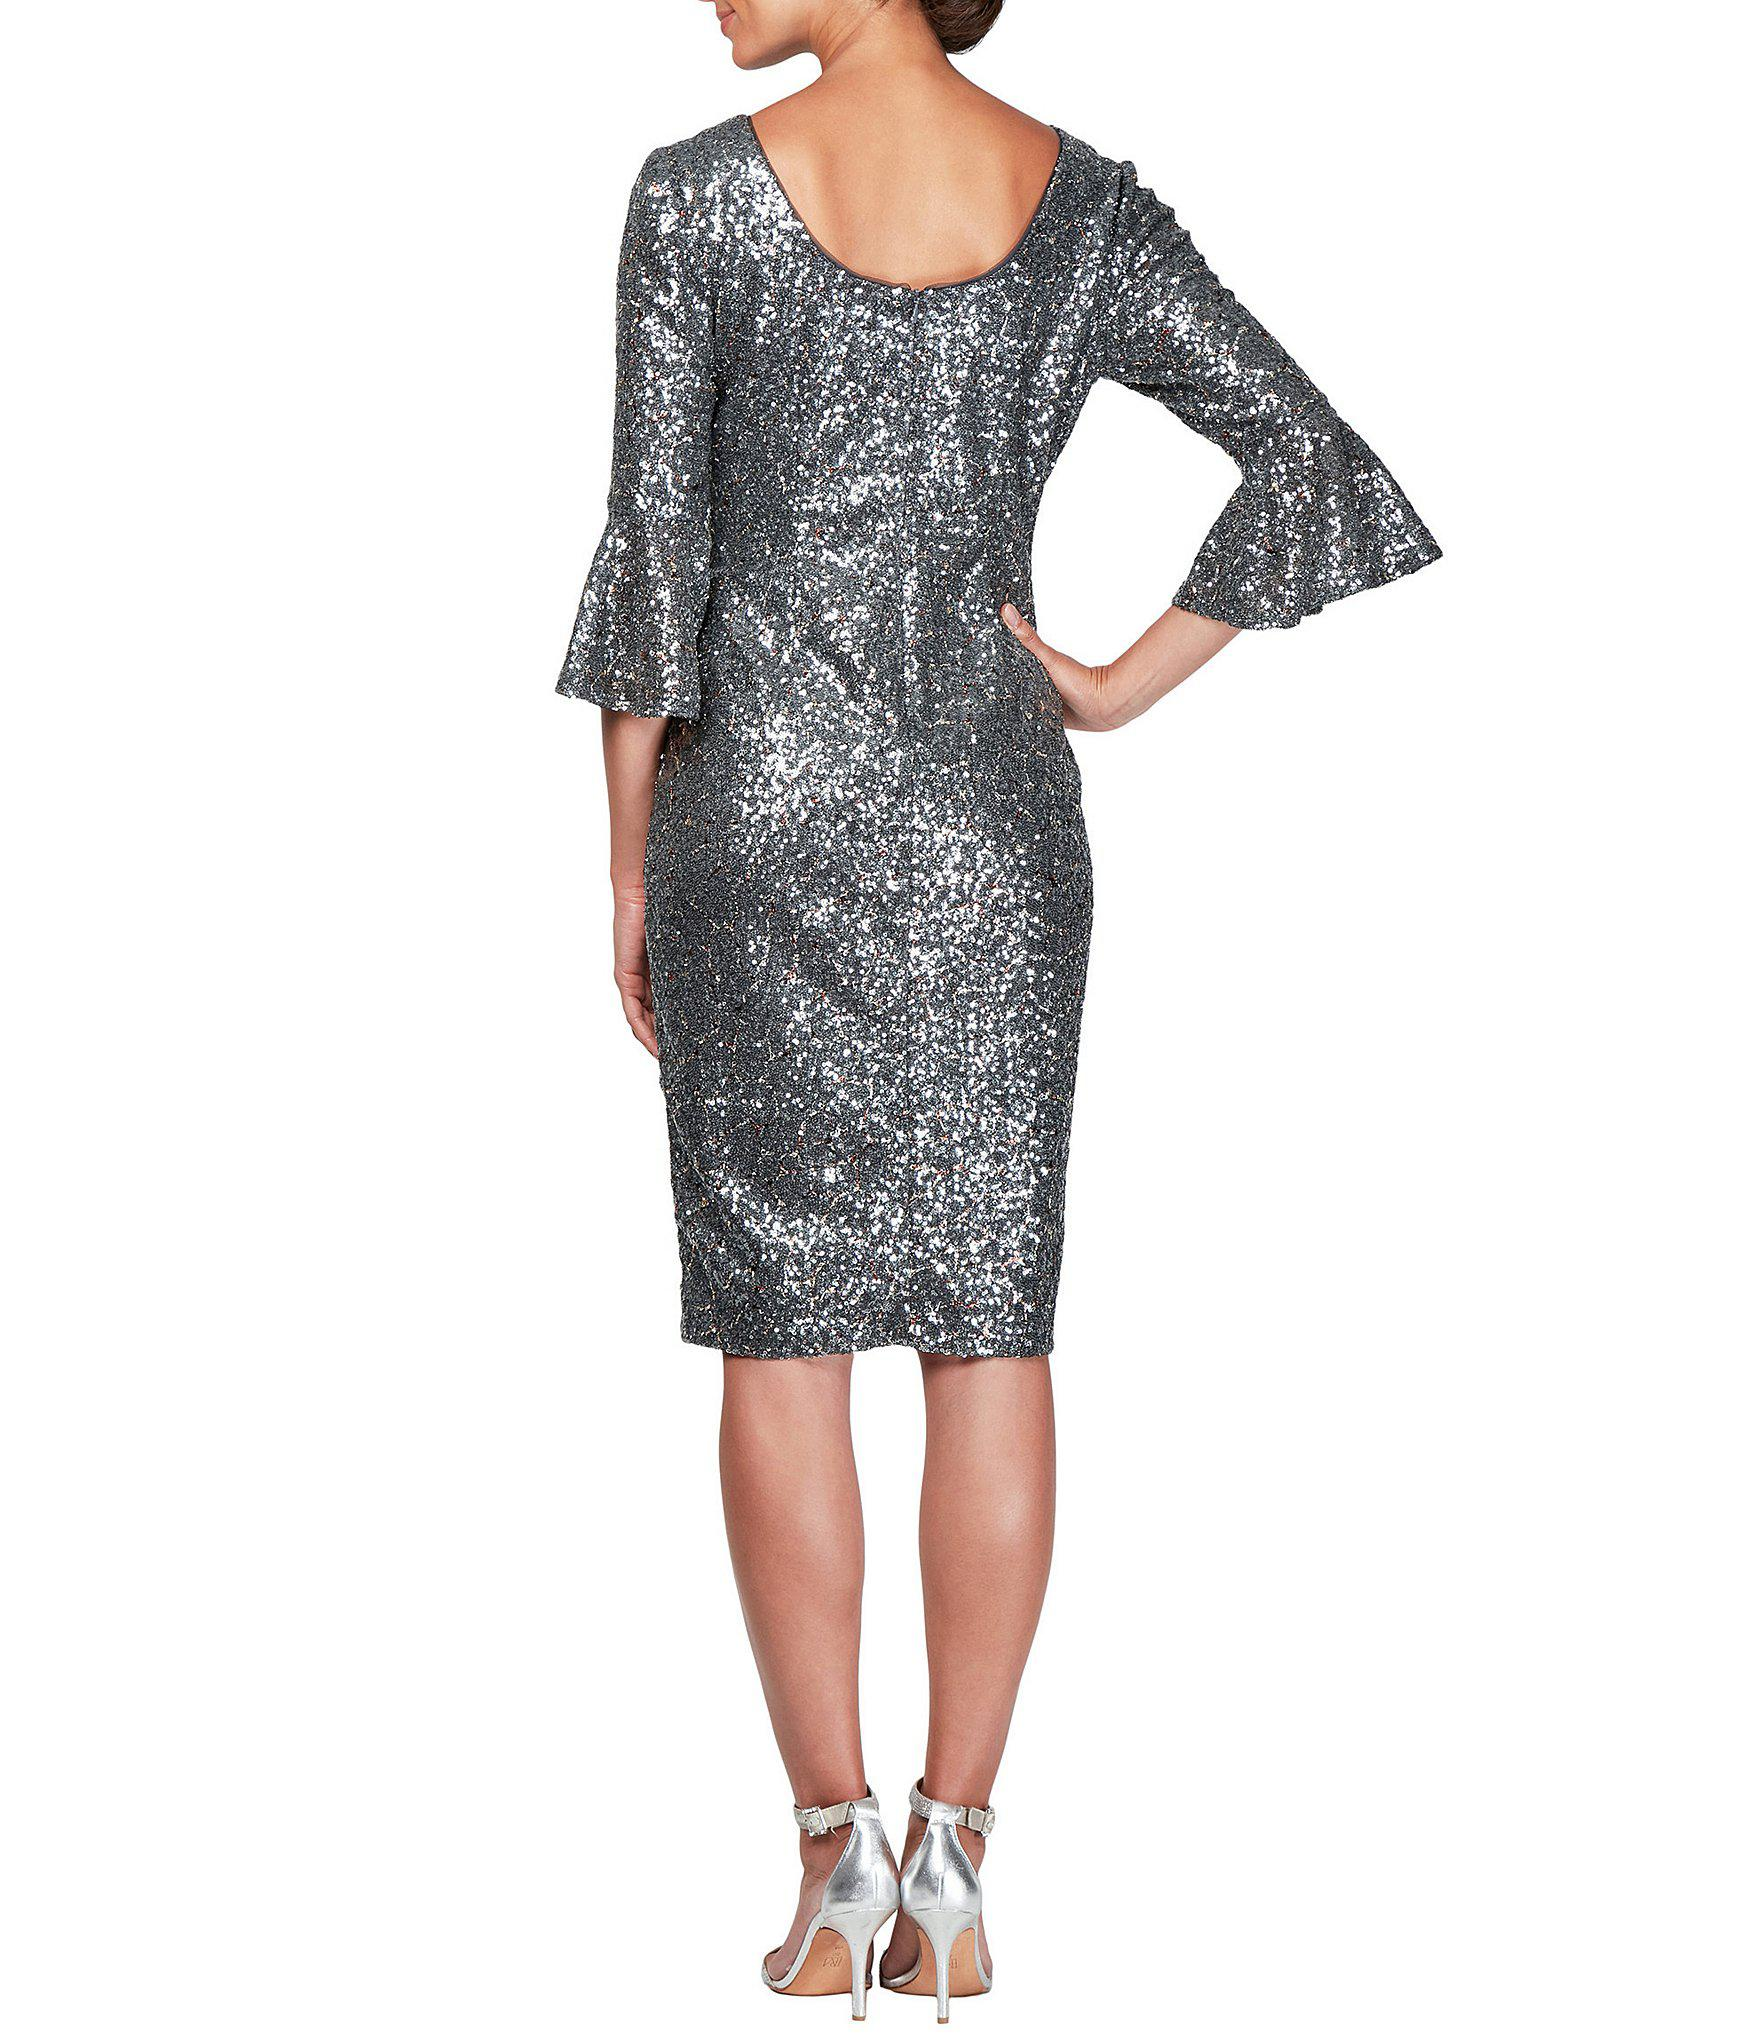 778105ce601 Lyst - Alex Evenings Petite Size Bell Sleeve Metallic Sequin Sheath ...